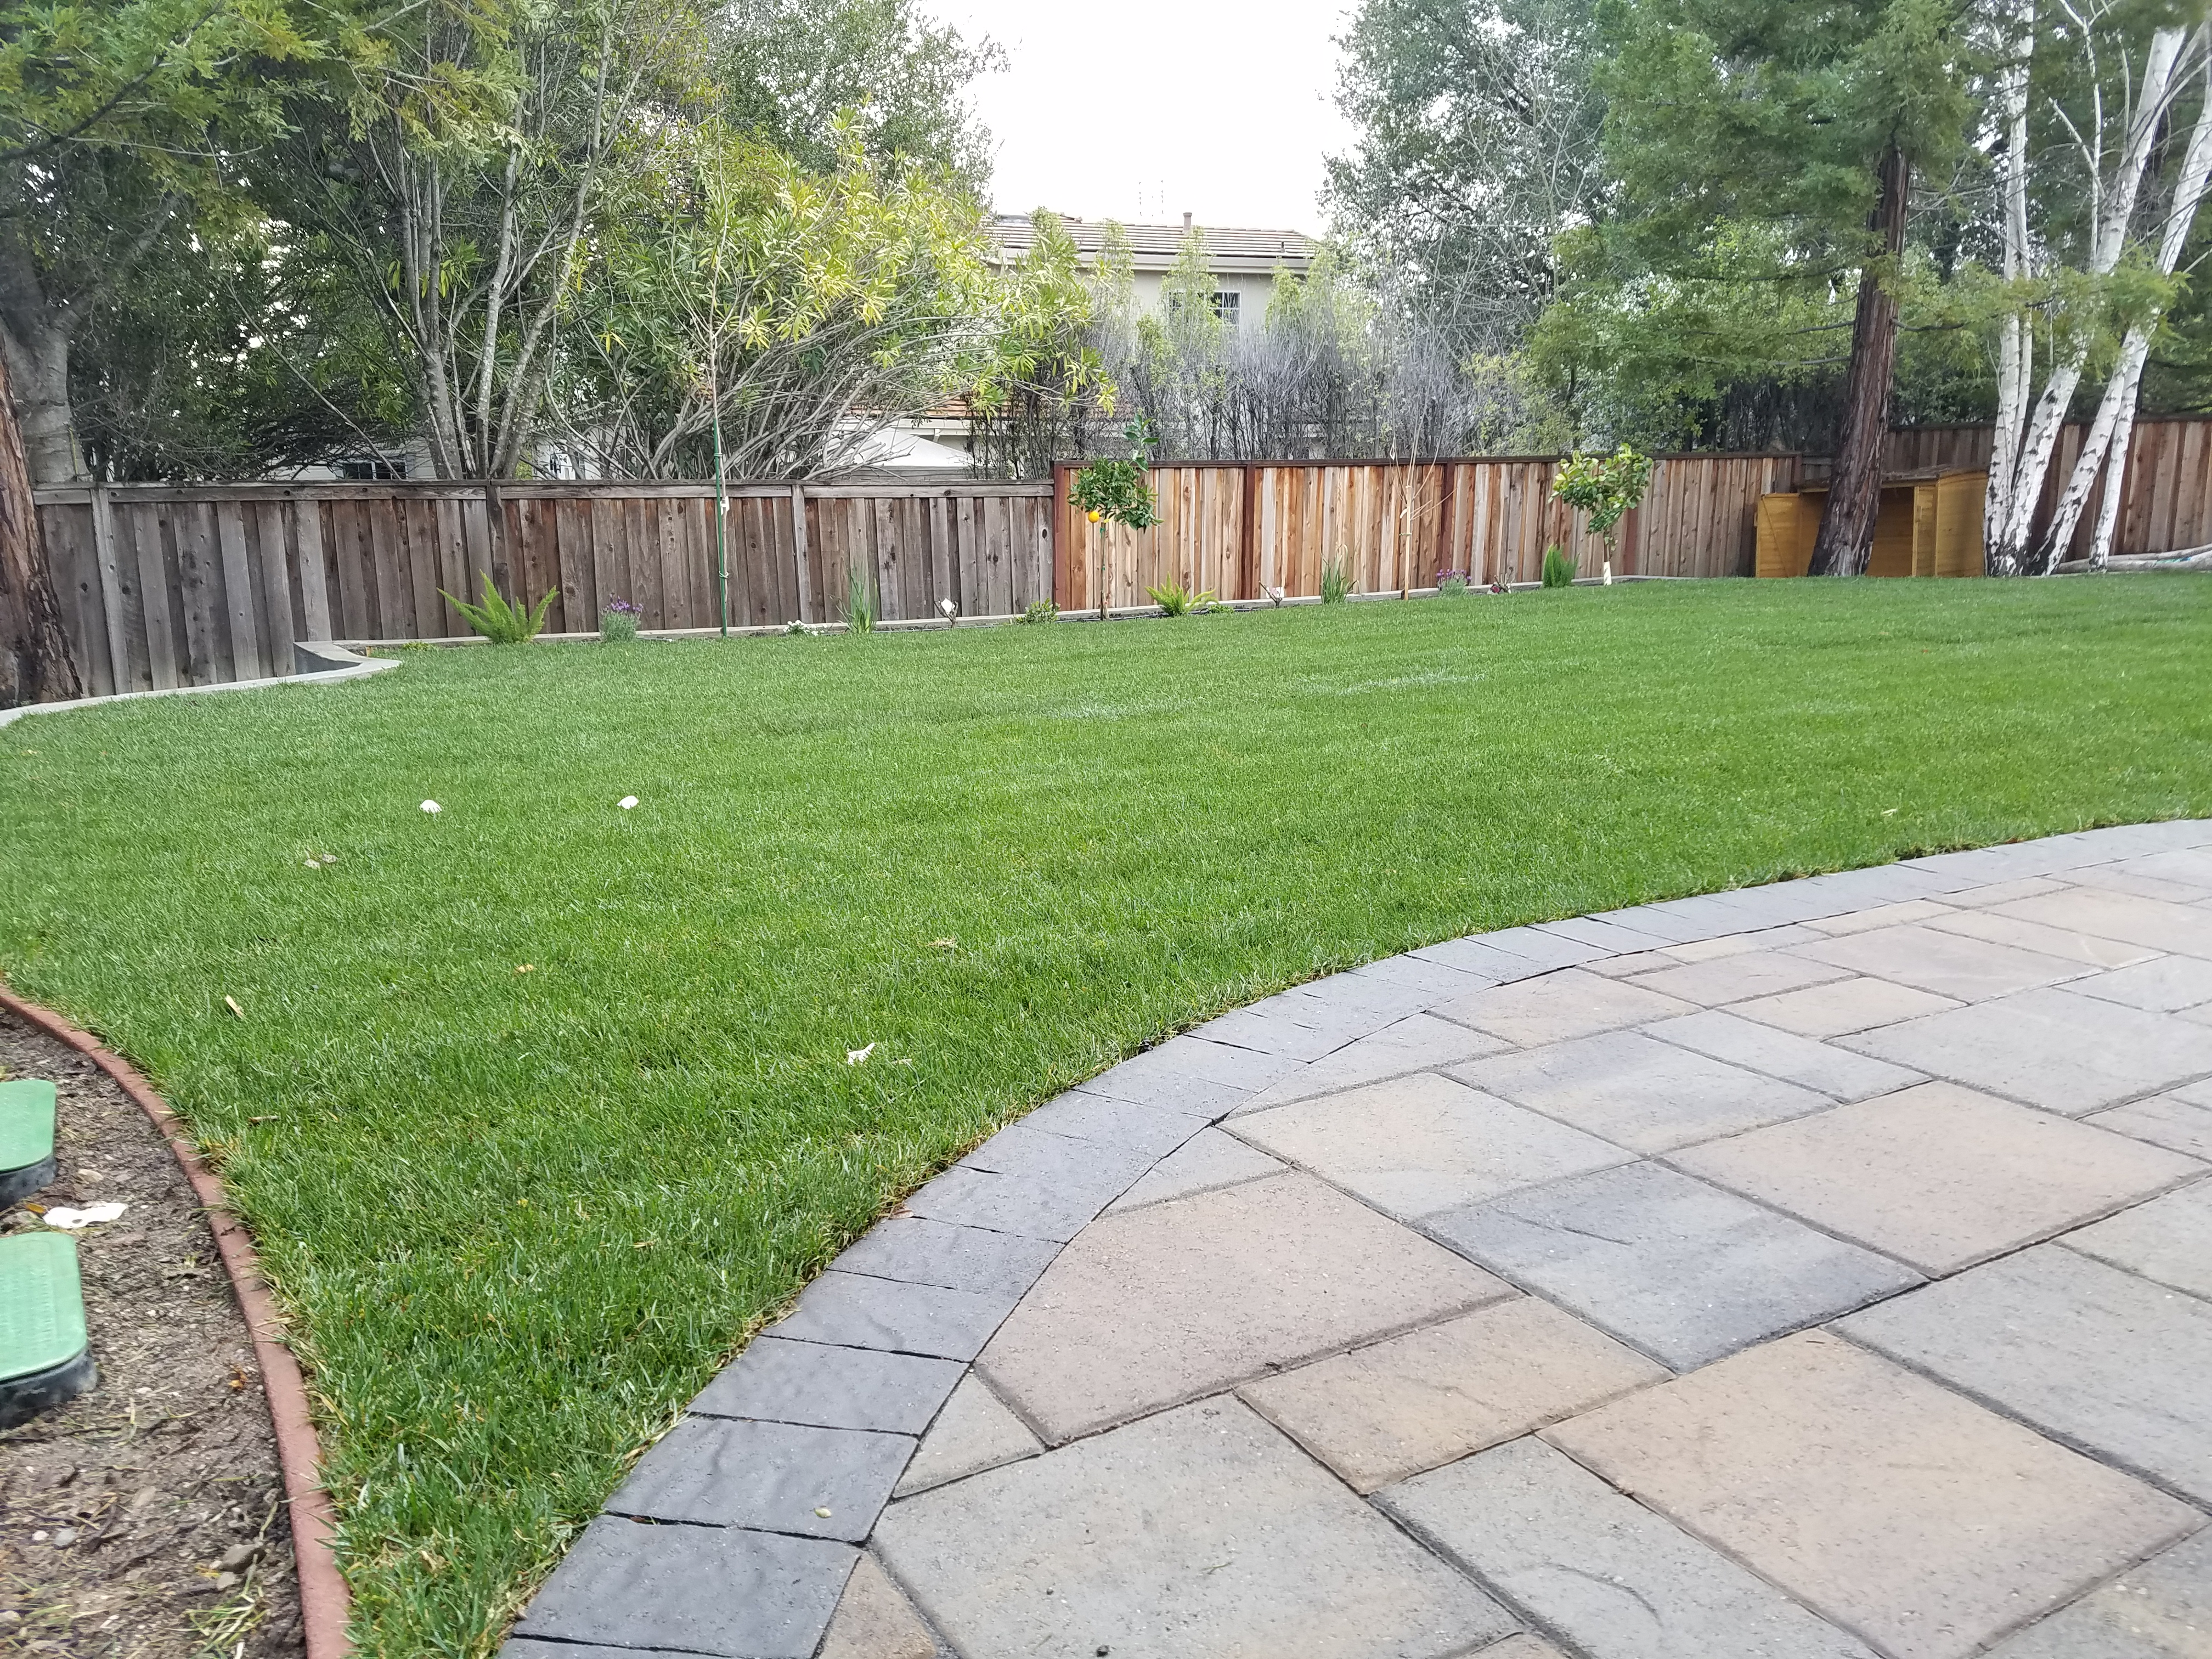 Sod, pavers and fence